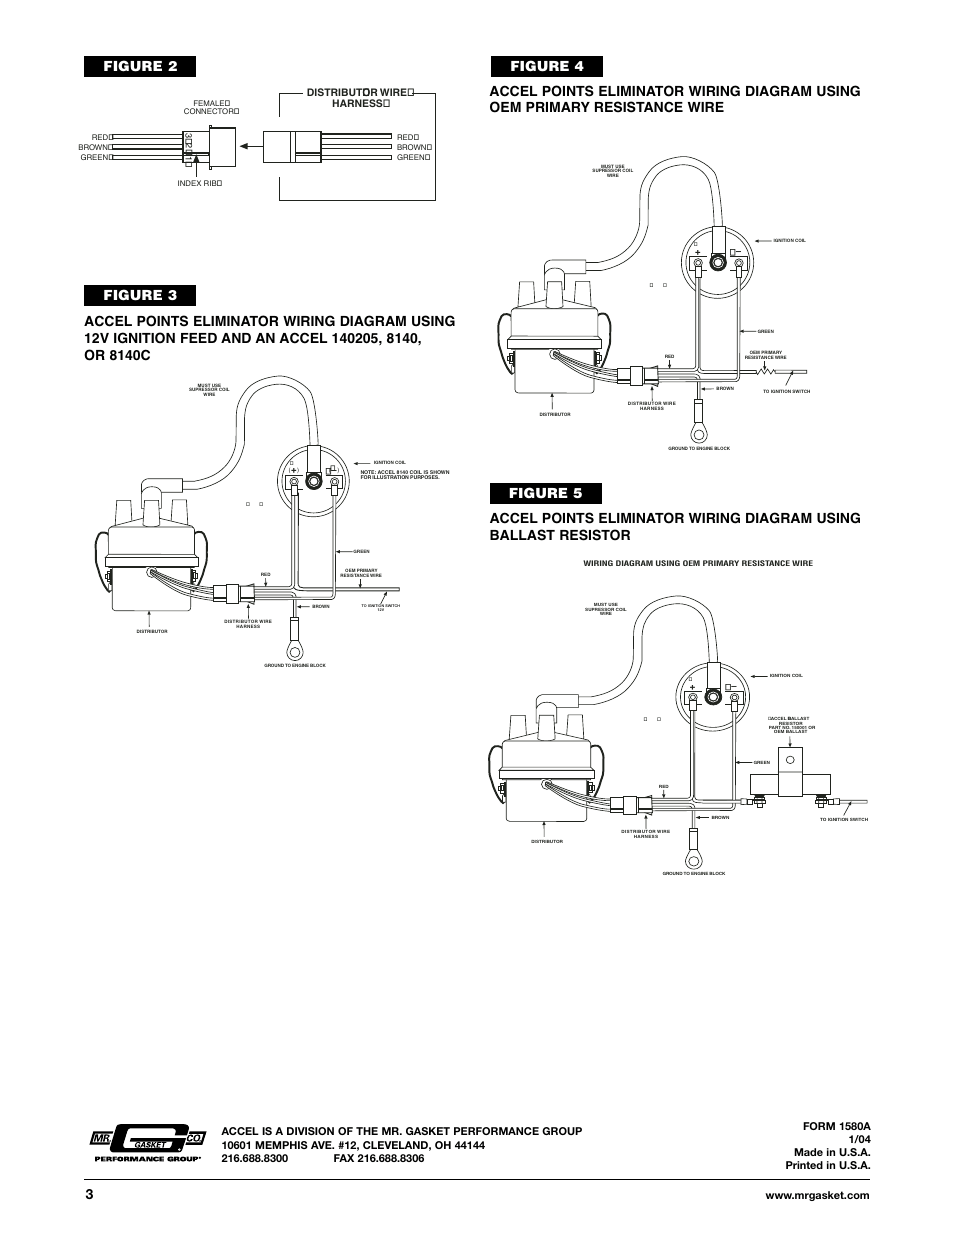 Unilite Distributor Wiring Diagram 34 Images Razor E200 Mallory Ignition Accel Points Eliminator Conversion 2020 Page3resize